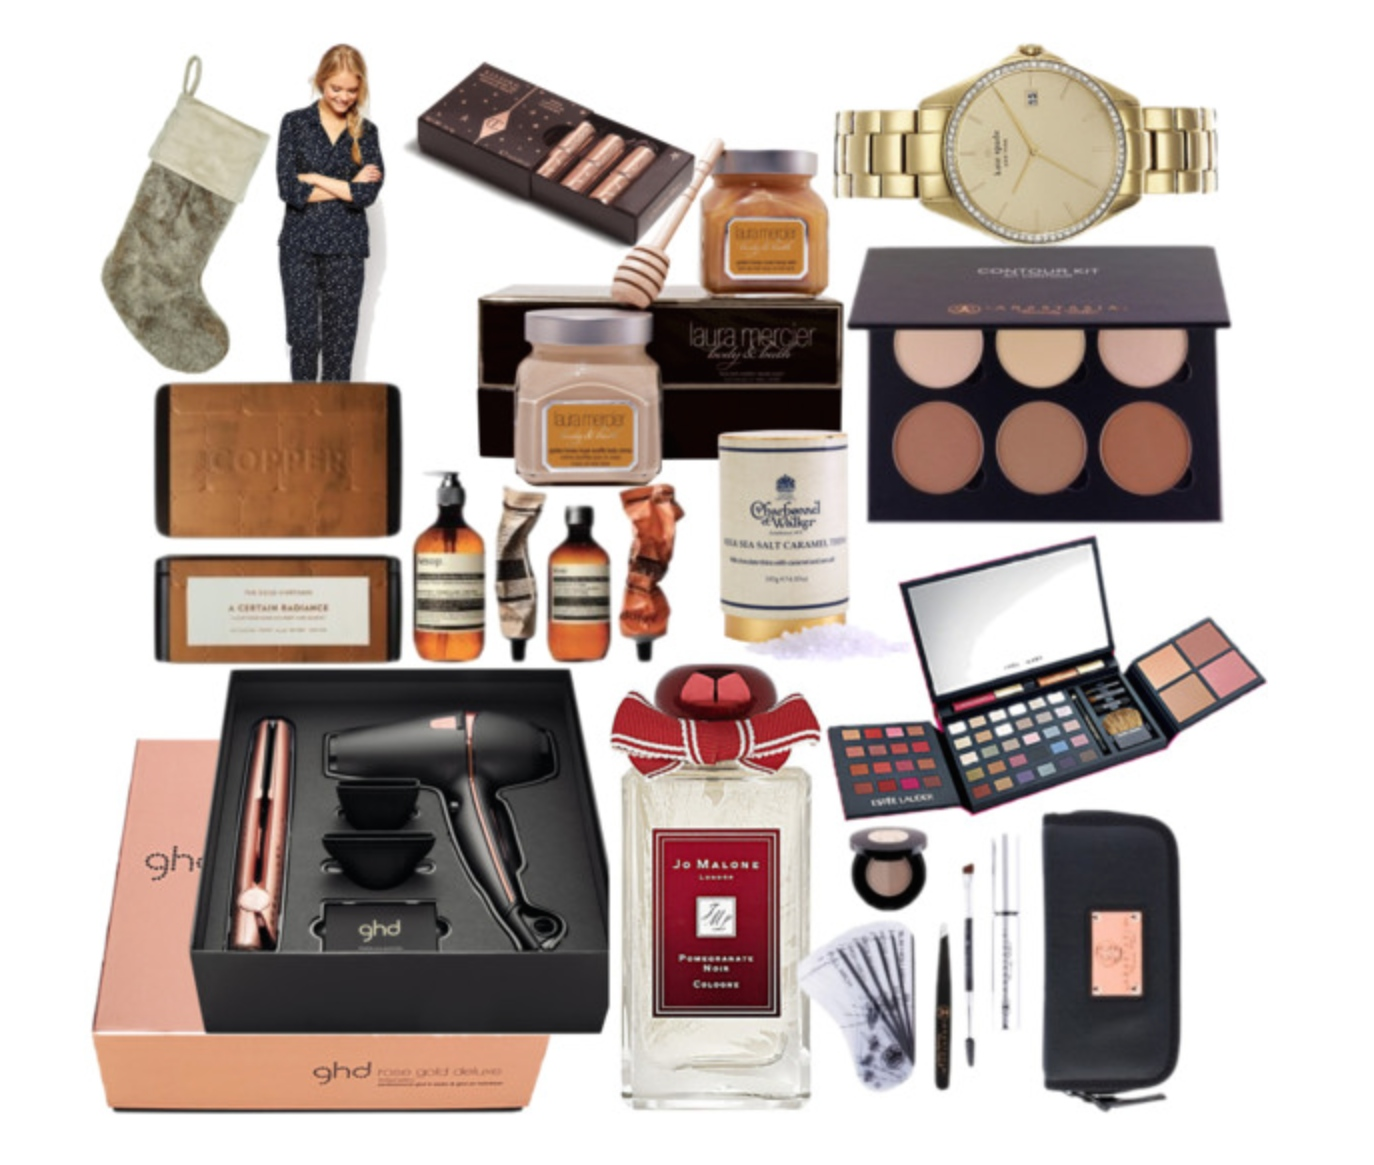 christmas gift guide luxury gifts stocking fillers for ForLuxury Gifts For Her